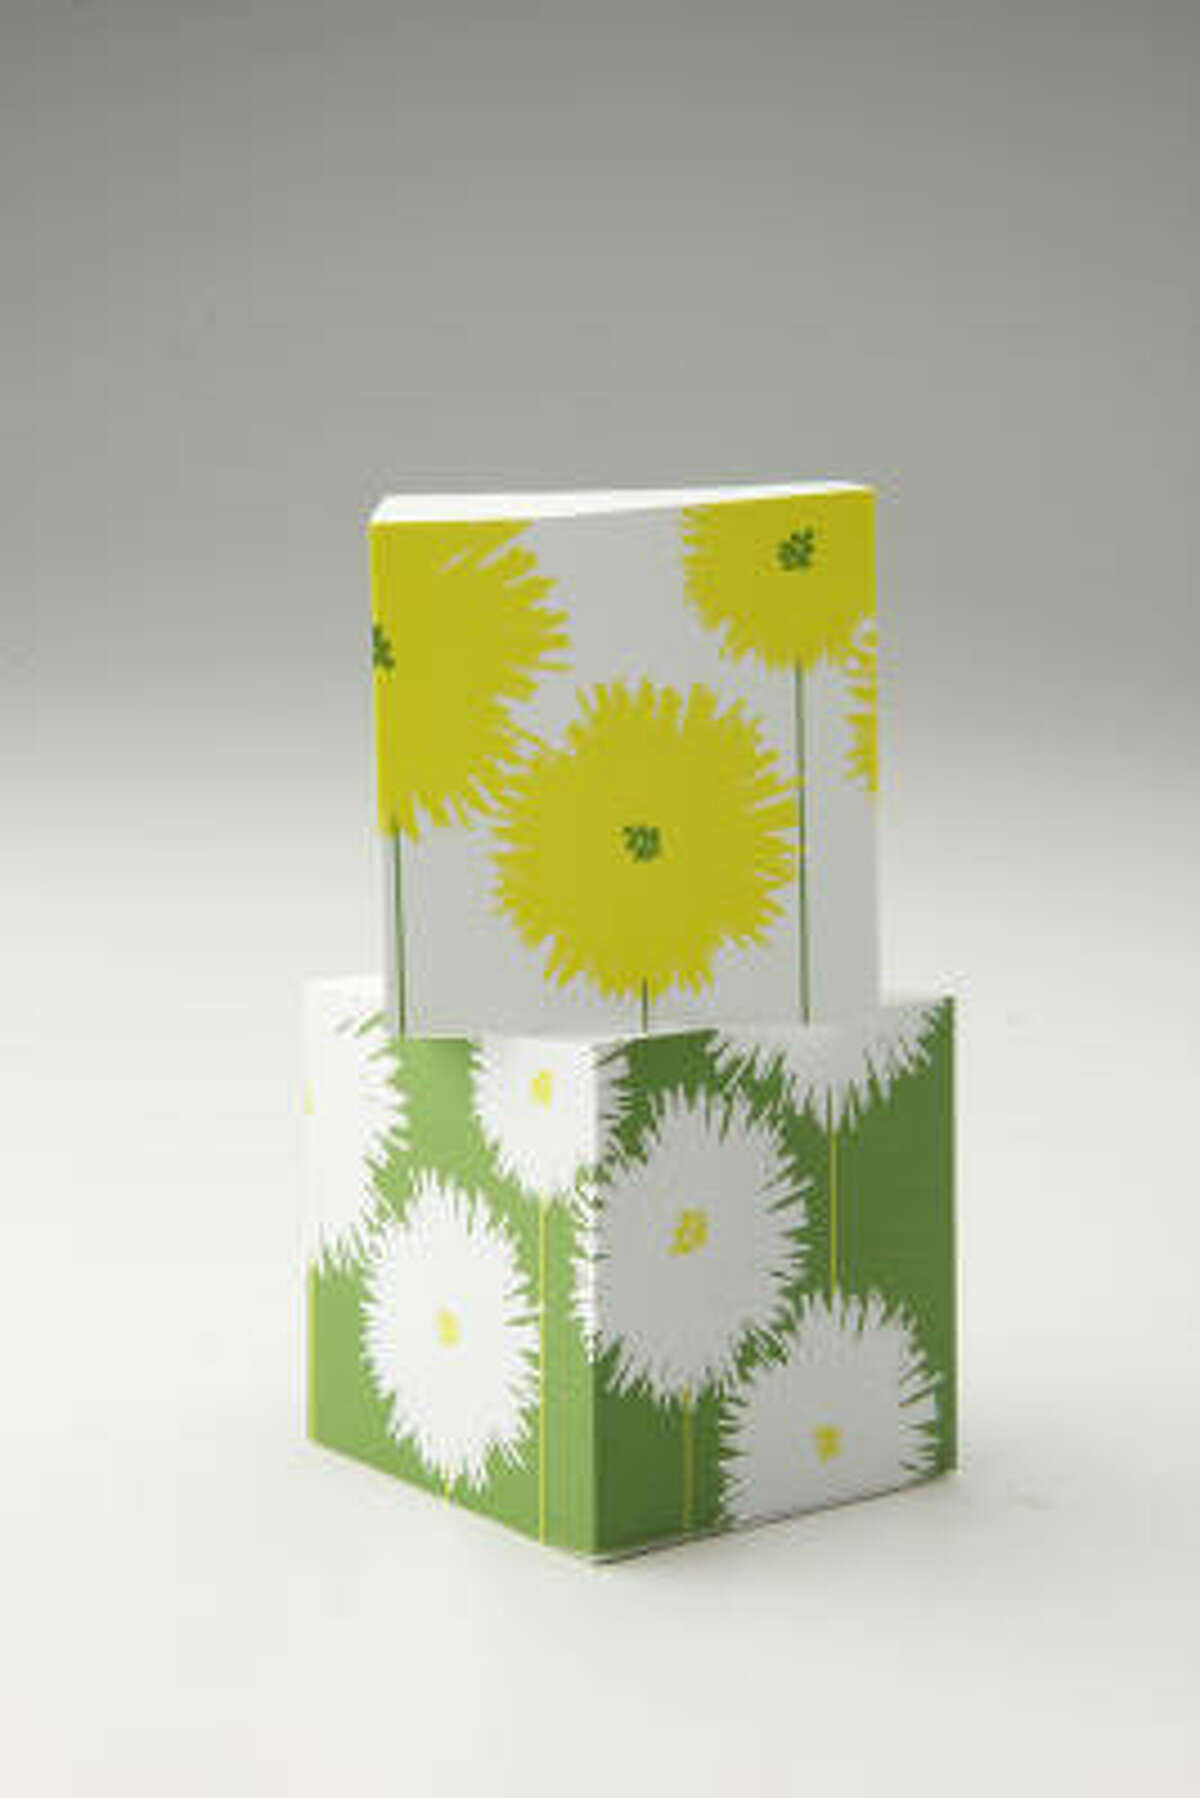 Snow & Graham pom pom mini noteblocks, $15.50 for two, PH Design Shop, 3306 South Shepherd Dr.